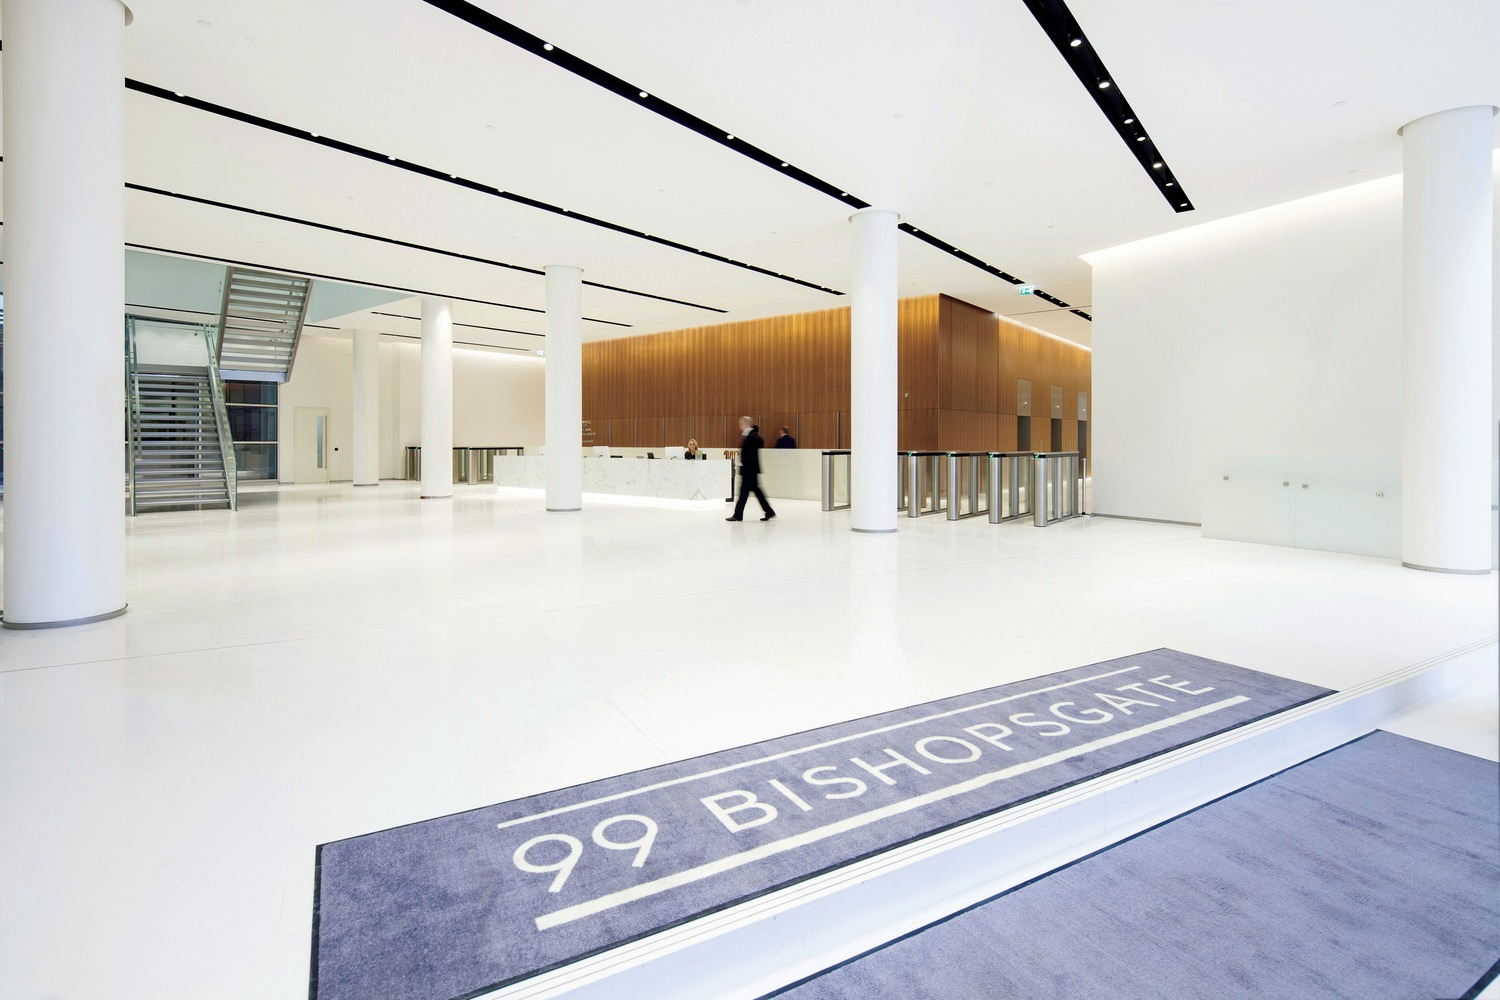 A large white lobby with a man walking through it. There's a blue rug in the foreground that says 99 Bishopsgate.